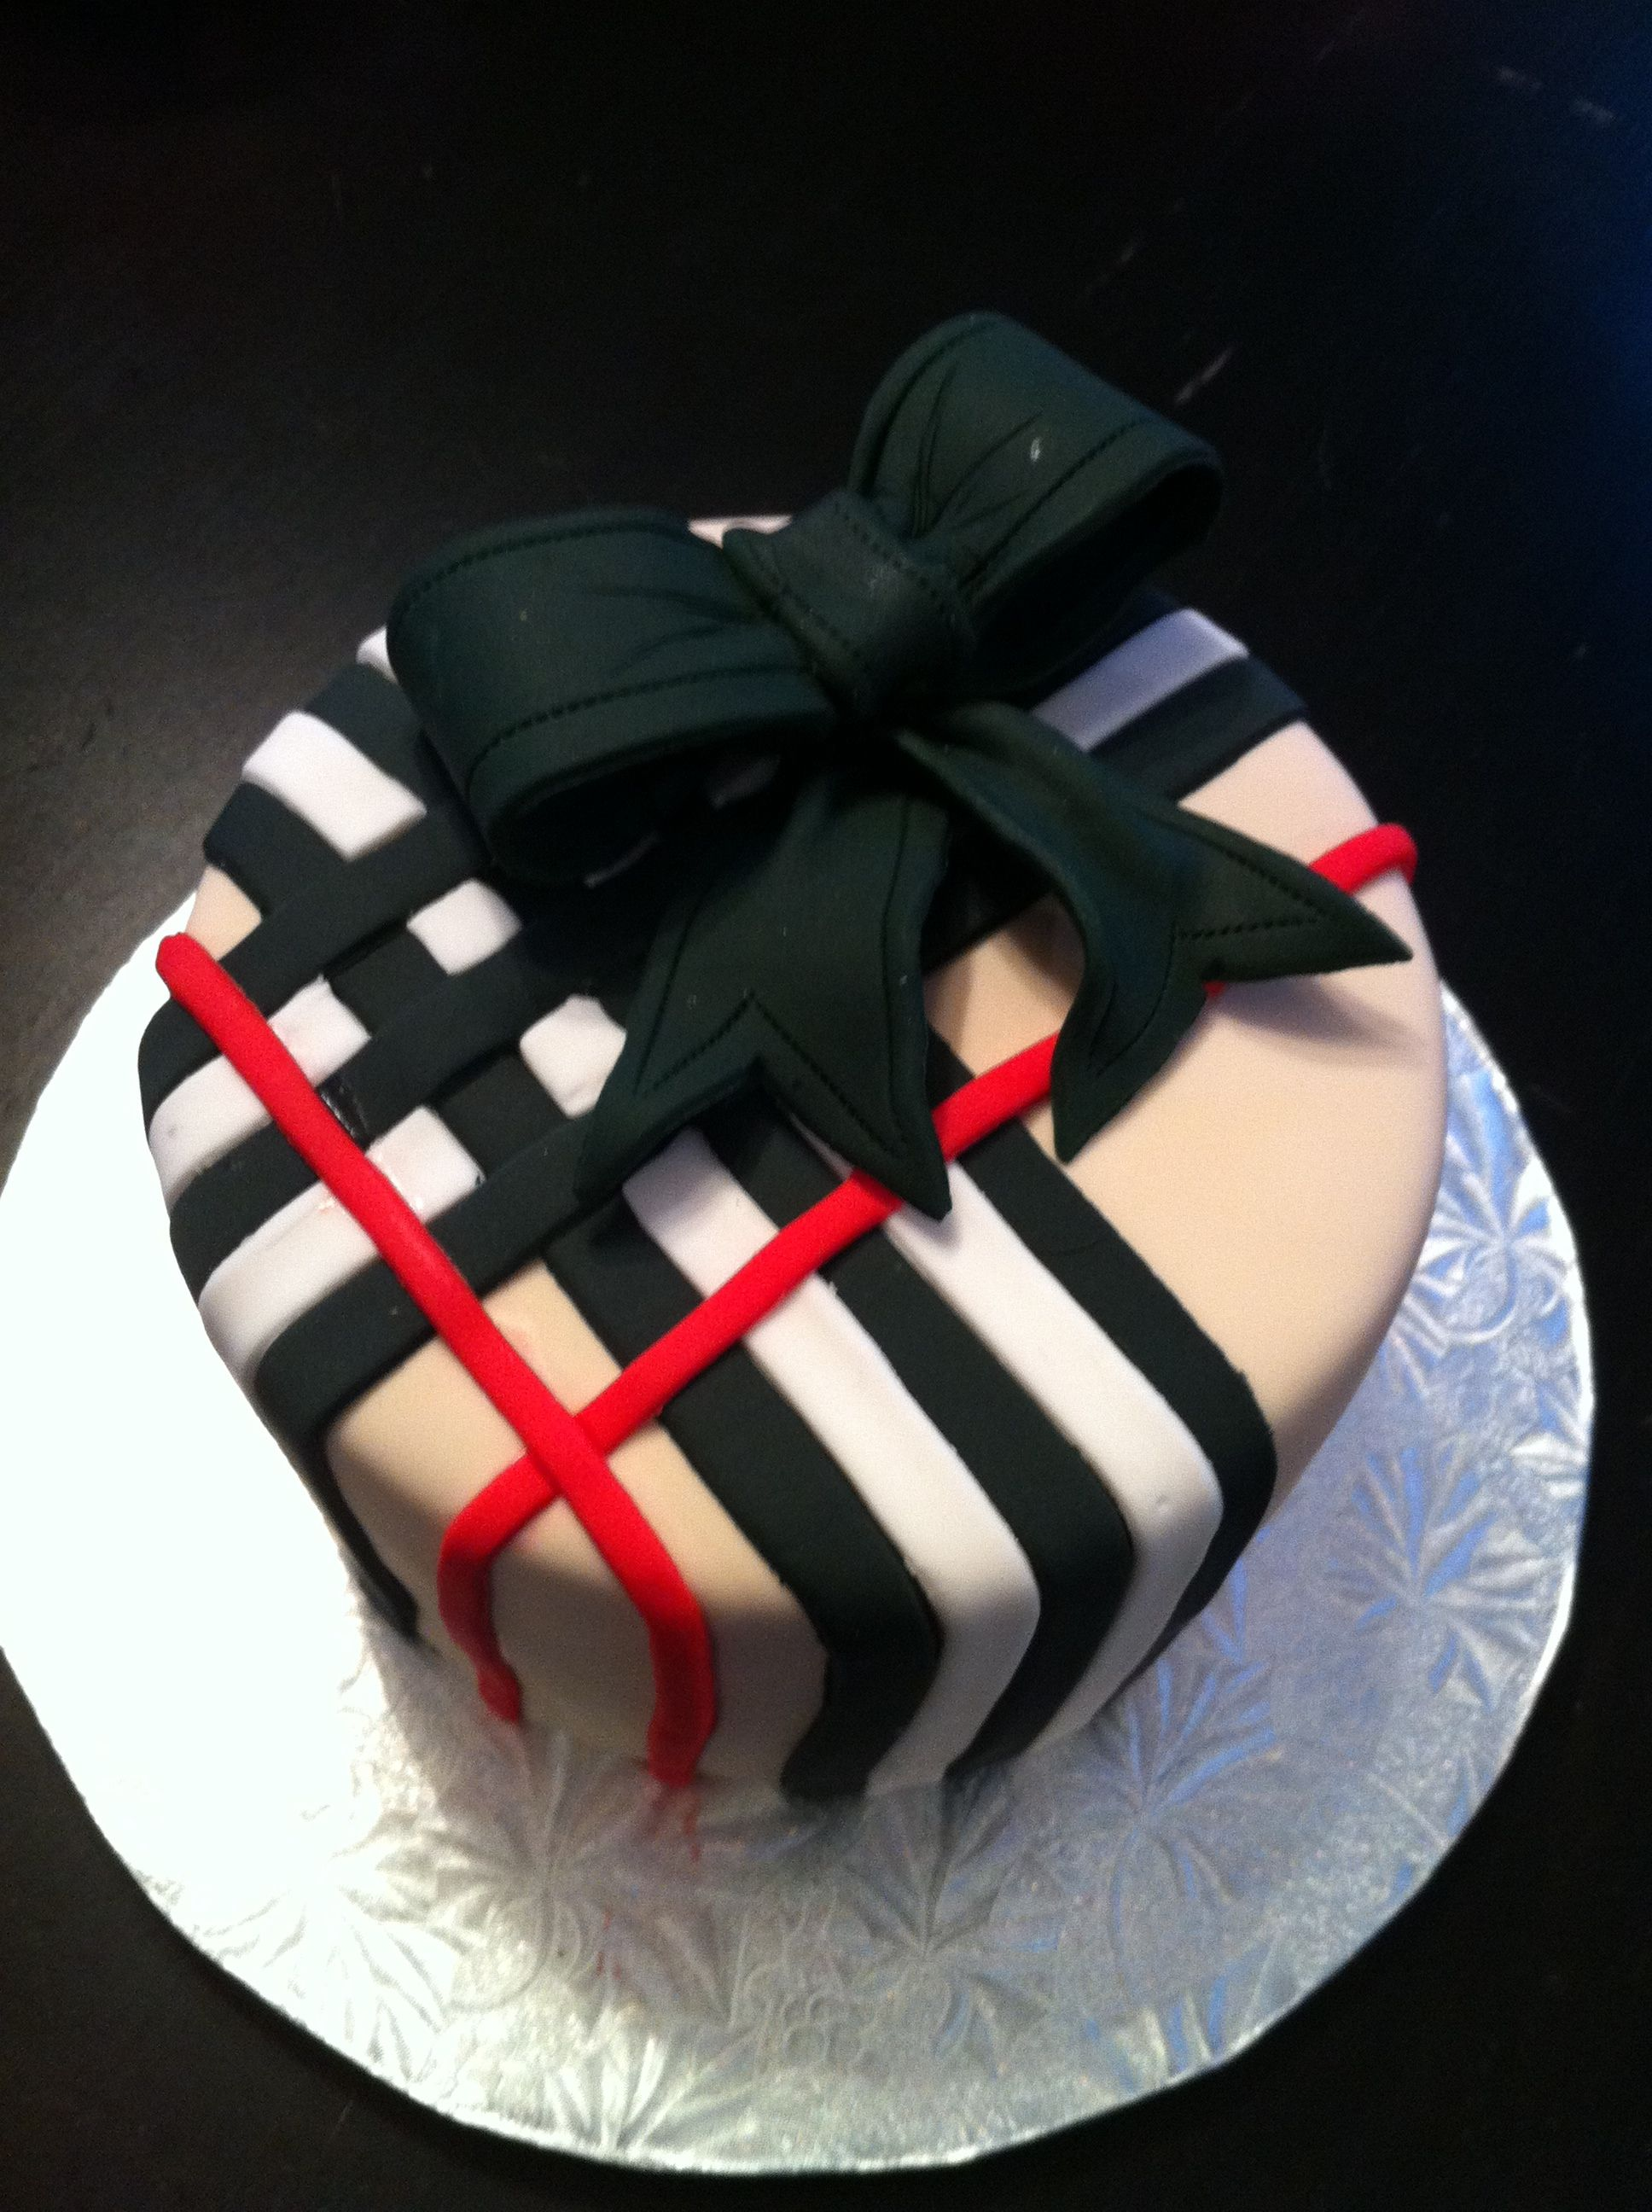 Burberry Cake Wonder If I Could Do This With Cookie Icing Bolos